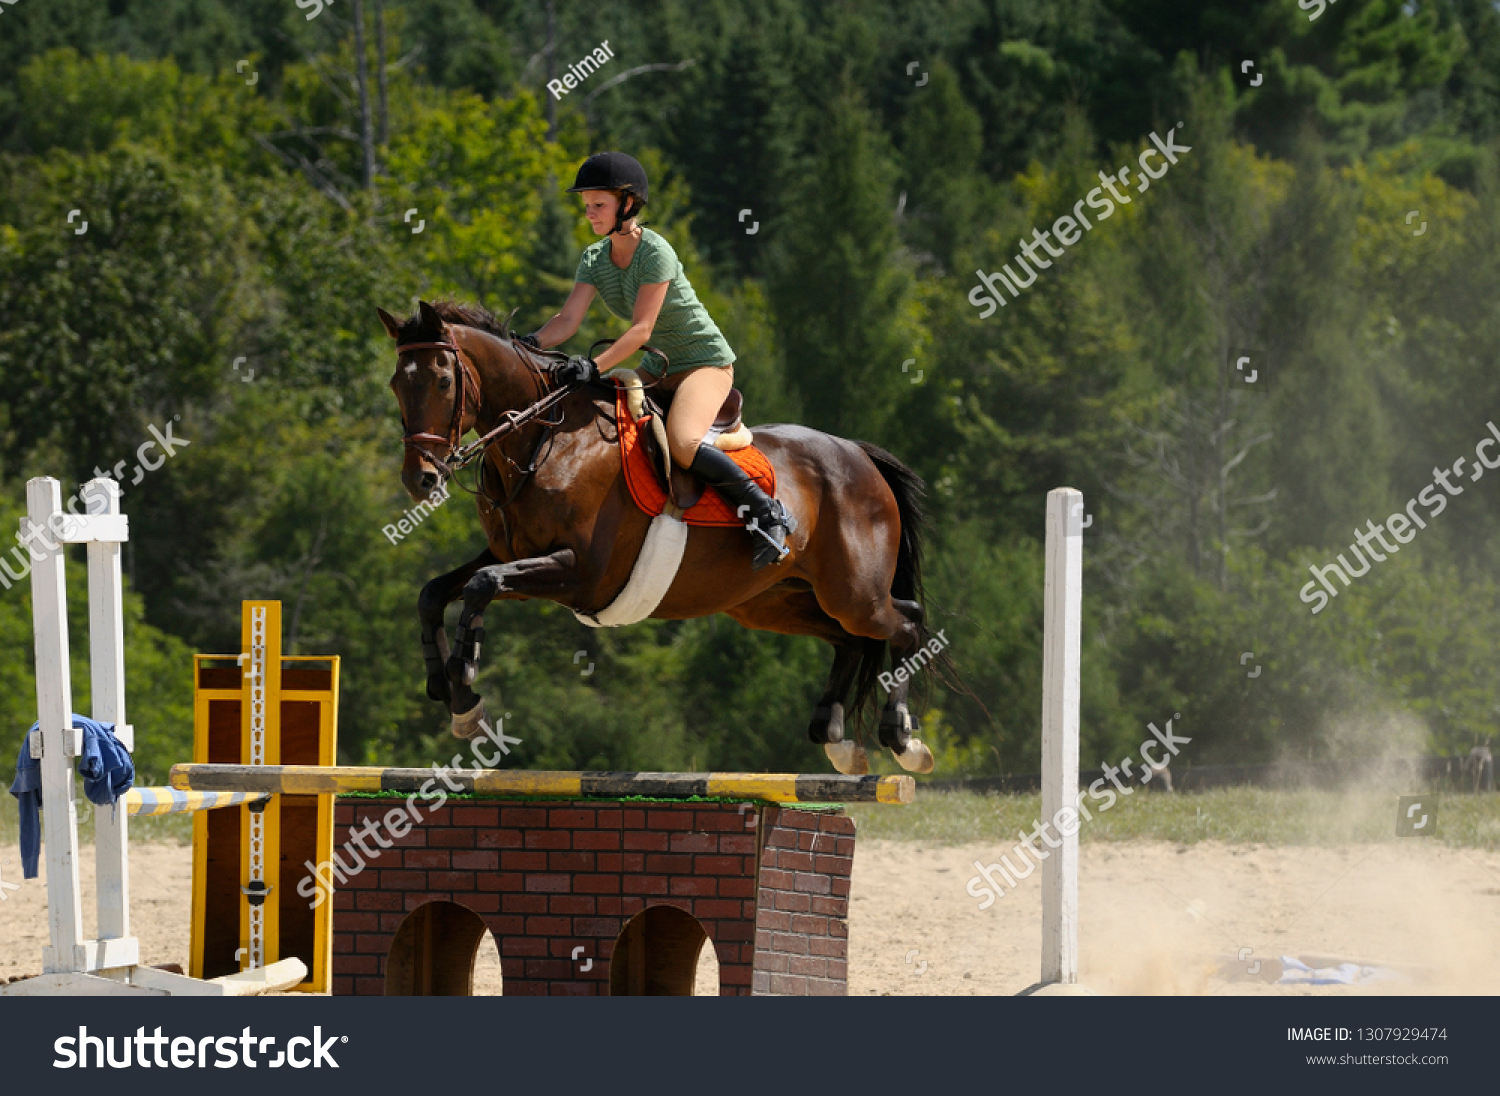 Female Jumper Soaring Over Jump Thoroughbred Stock Photo Edit Now 1307929474